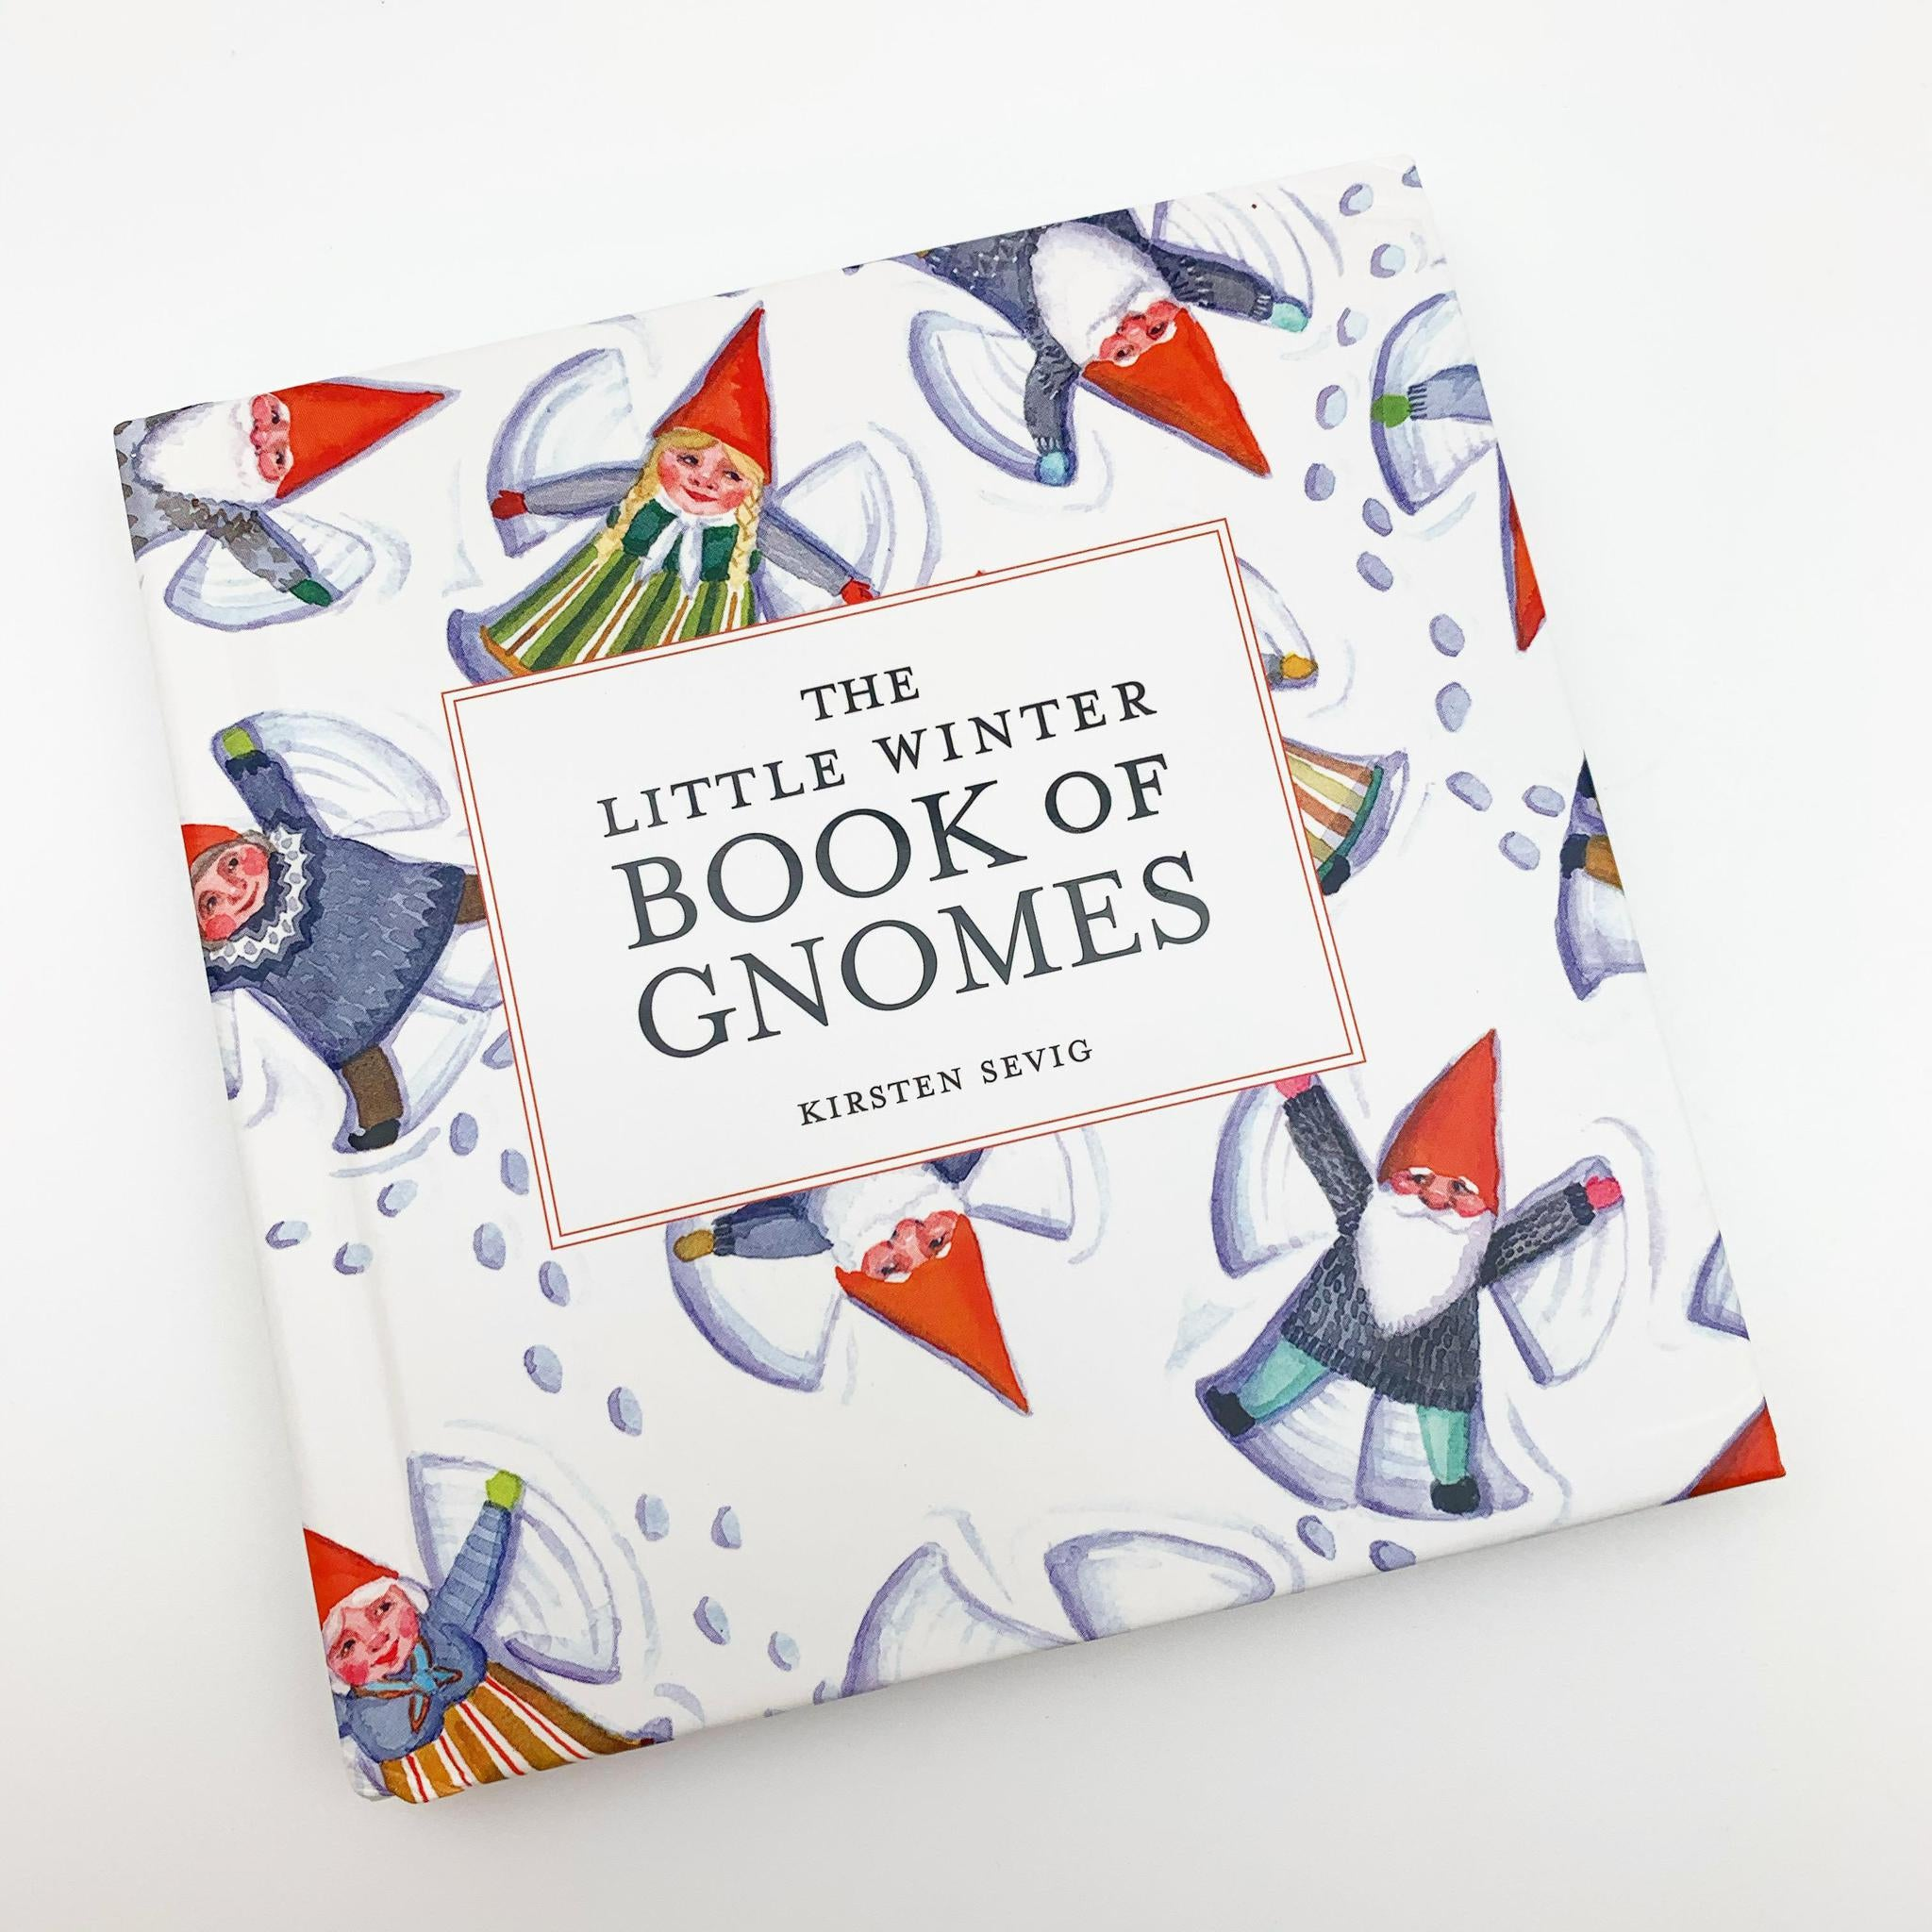 Book - Little Winter Book of Gnomes